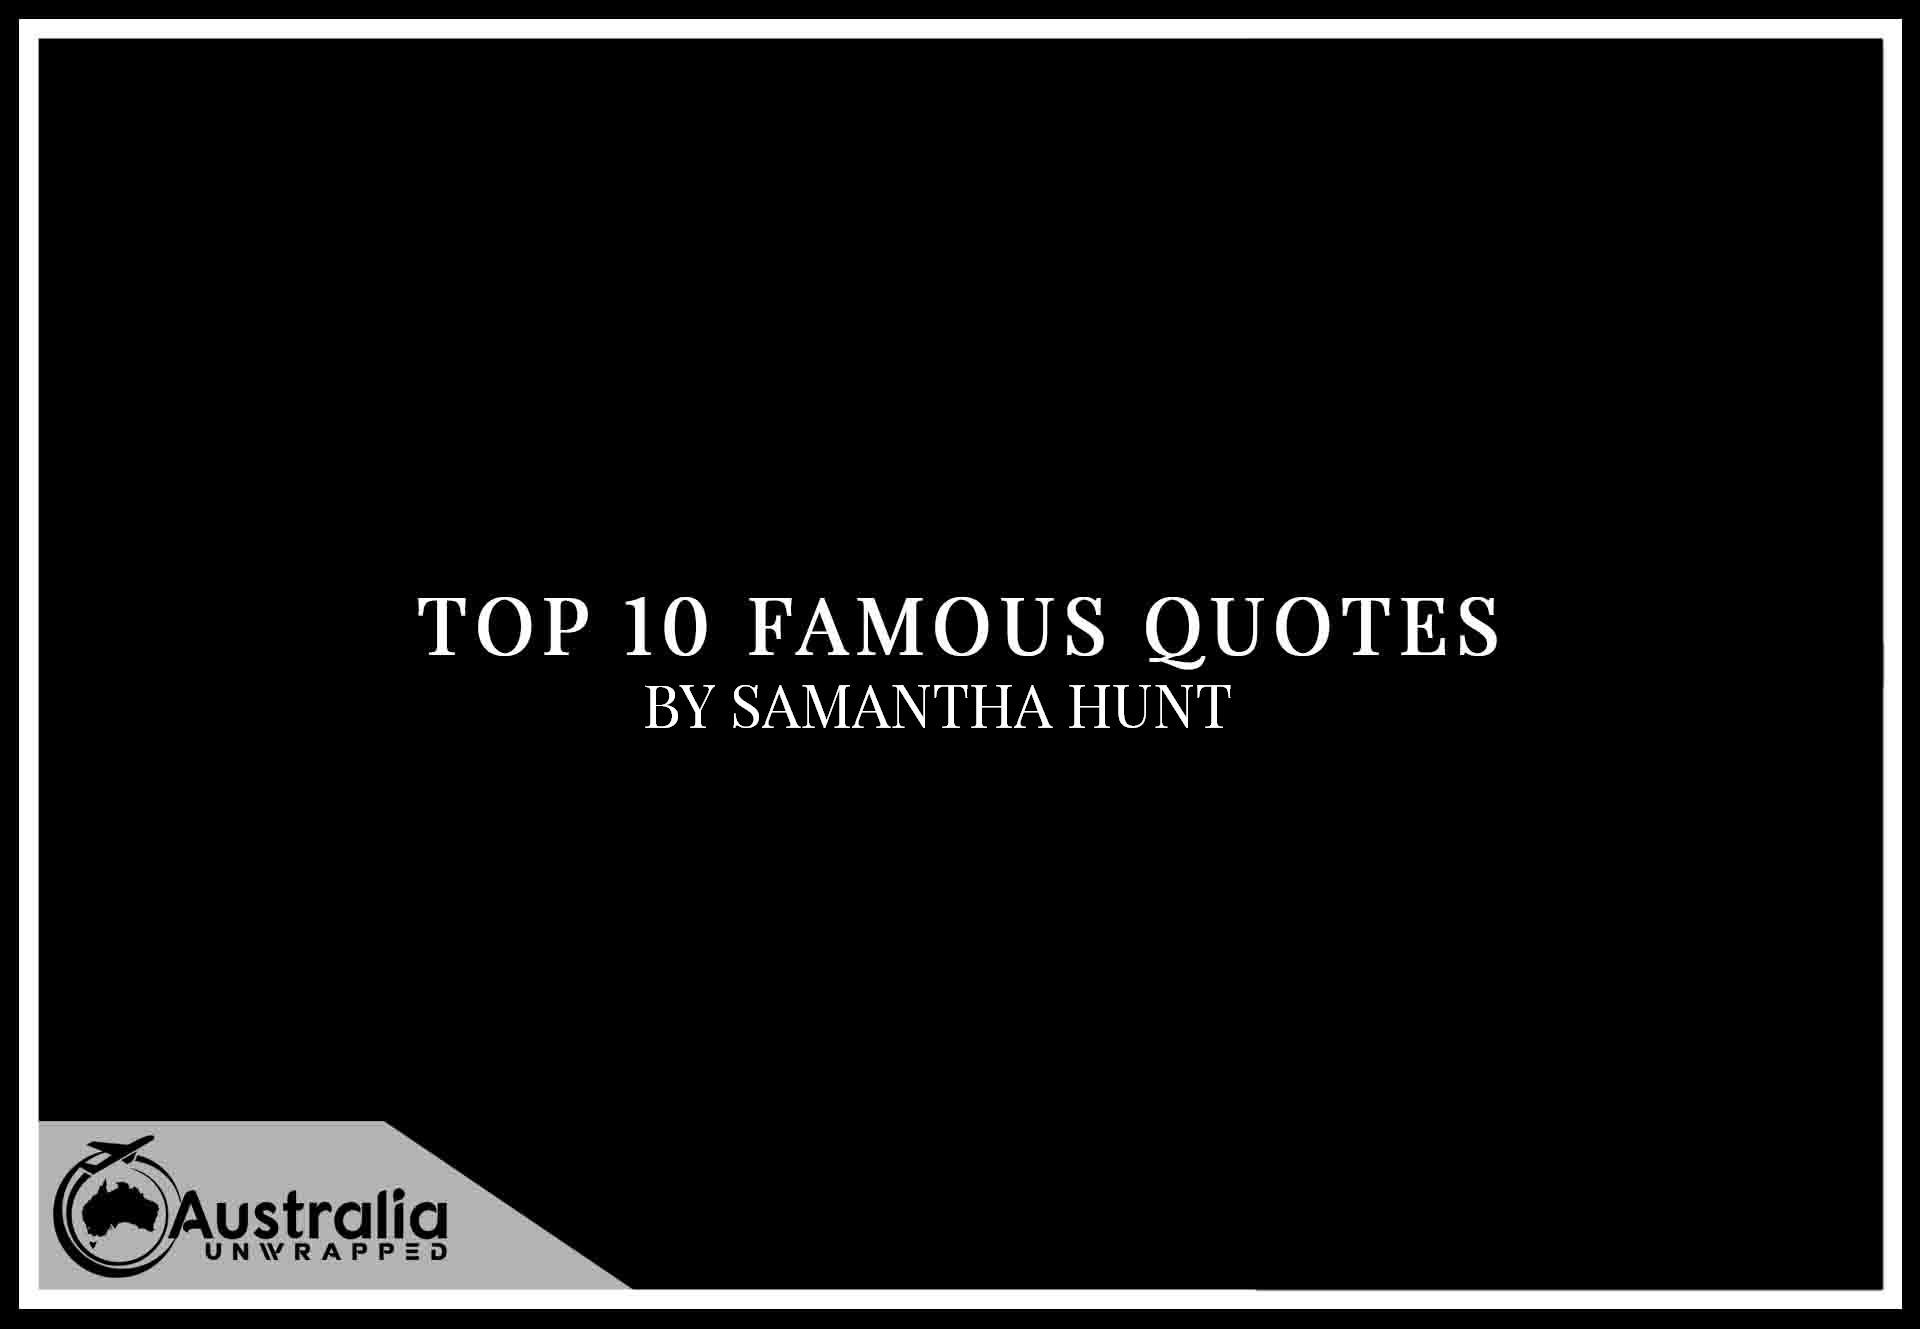 Top 10 Famous Quotes by Author Samantha Hunt